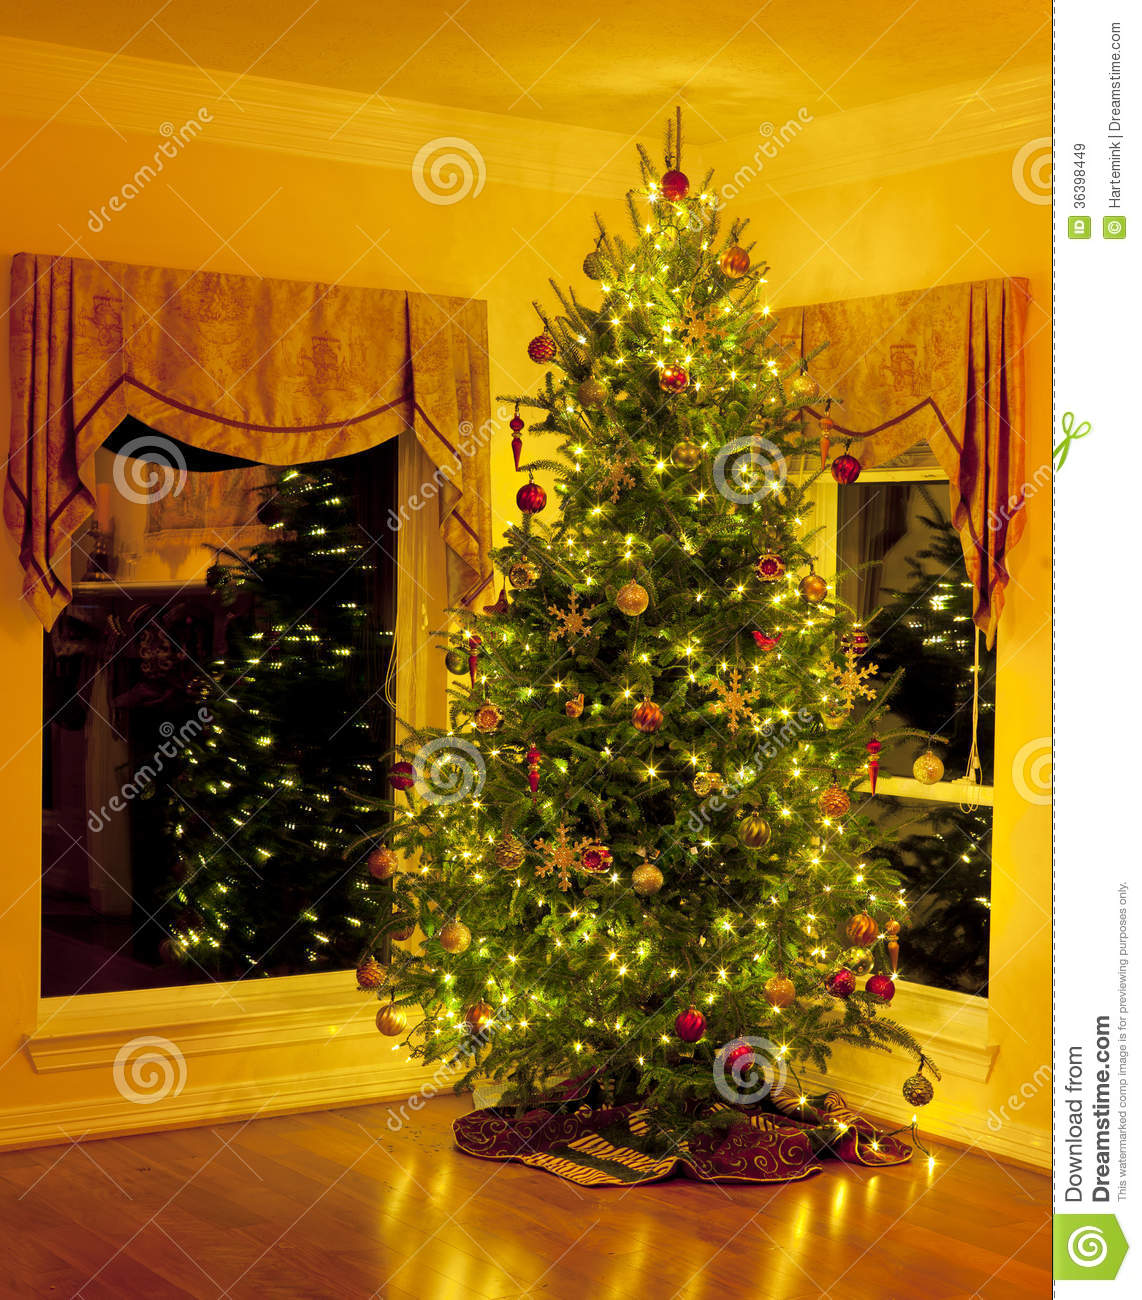 Christmas Tree In Living Room Corner With Reflections Stock Image